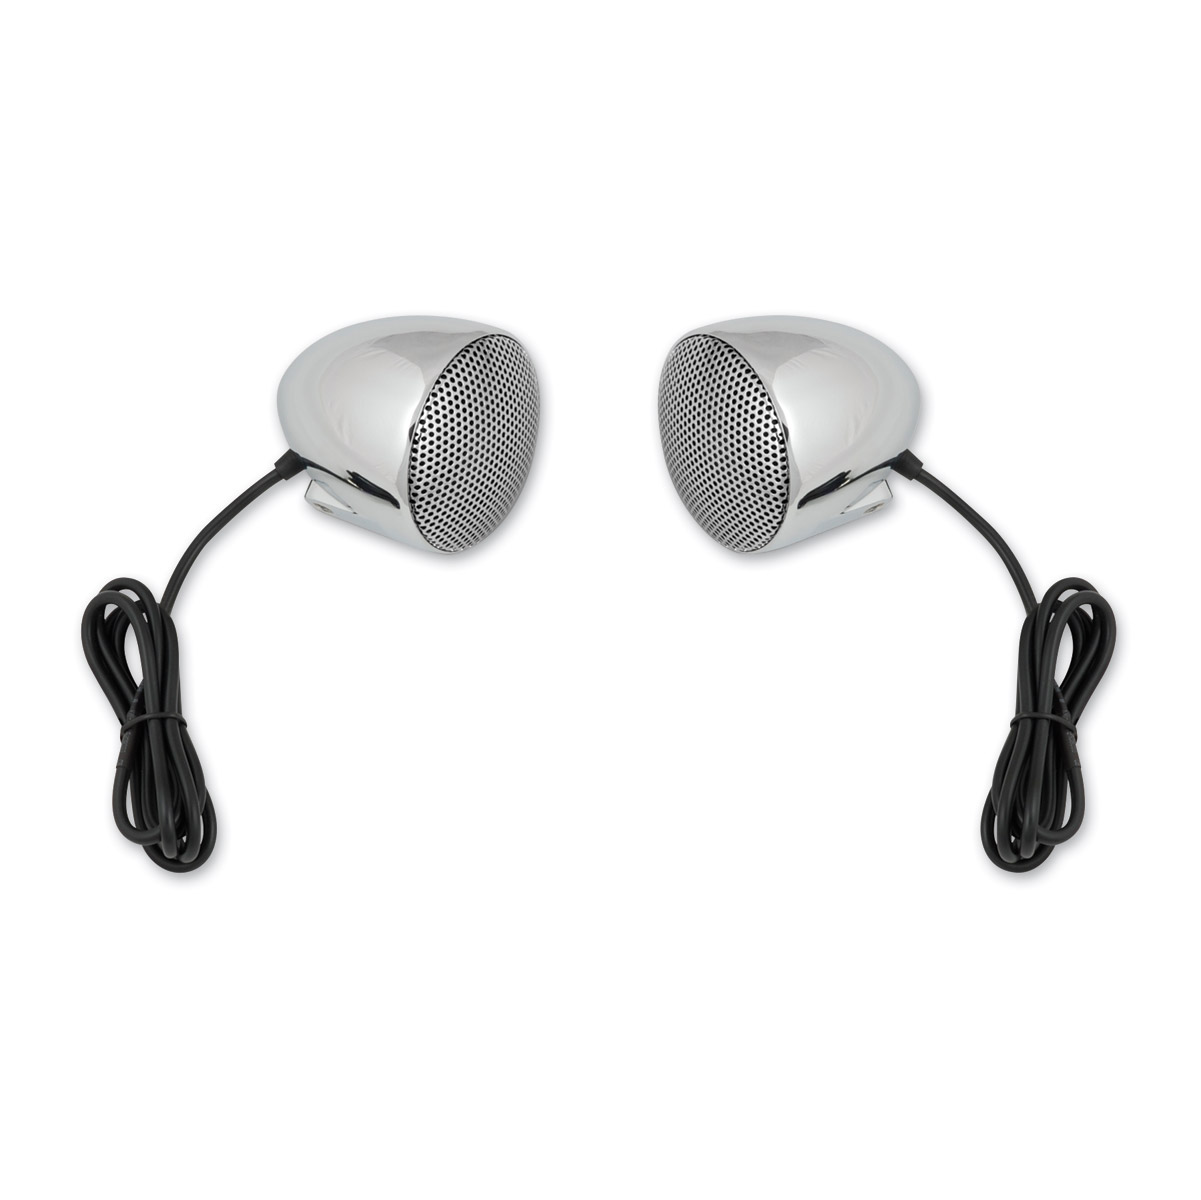 Cycle Sounds 3″ Speaker Upgrade Kit with Chrome Grills